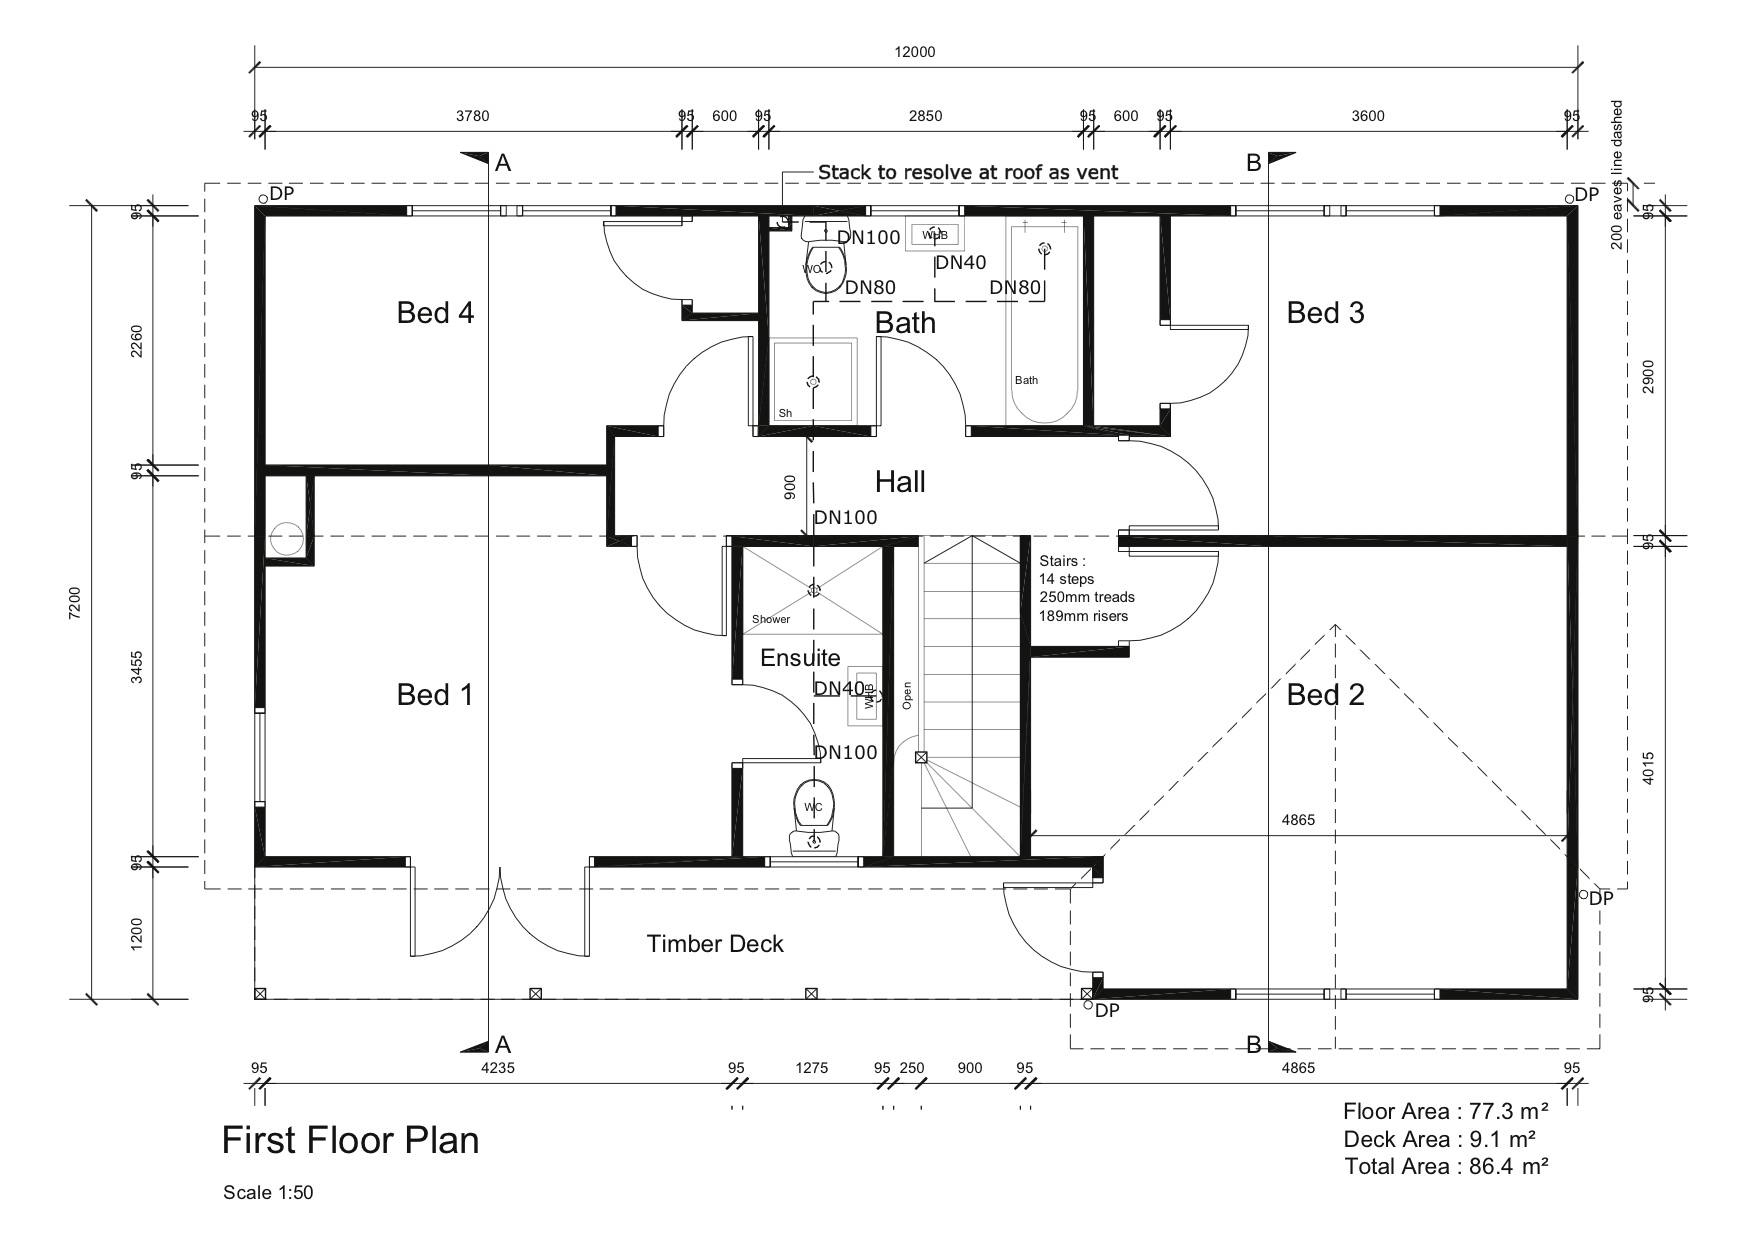 Mustard construction dunedin builders victorian design Floor plan view